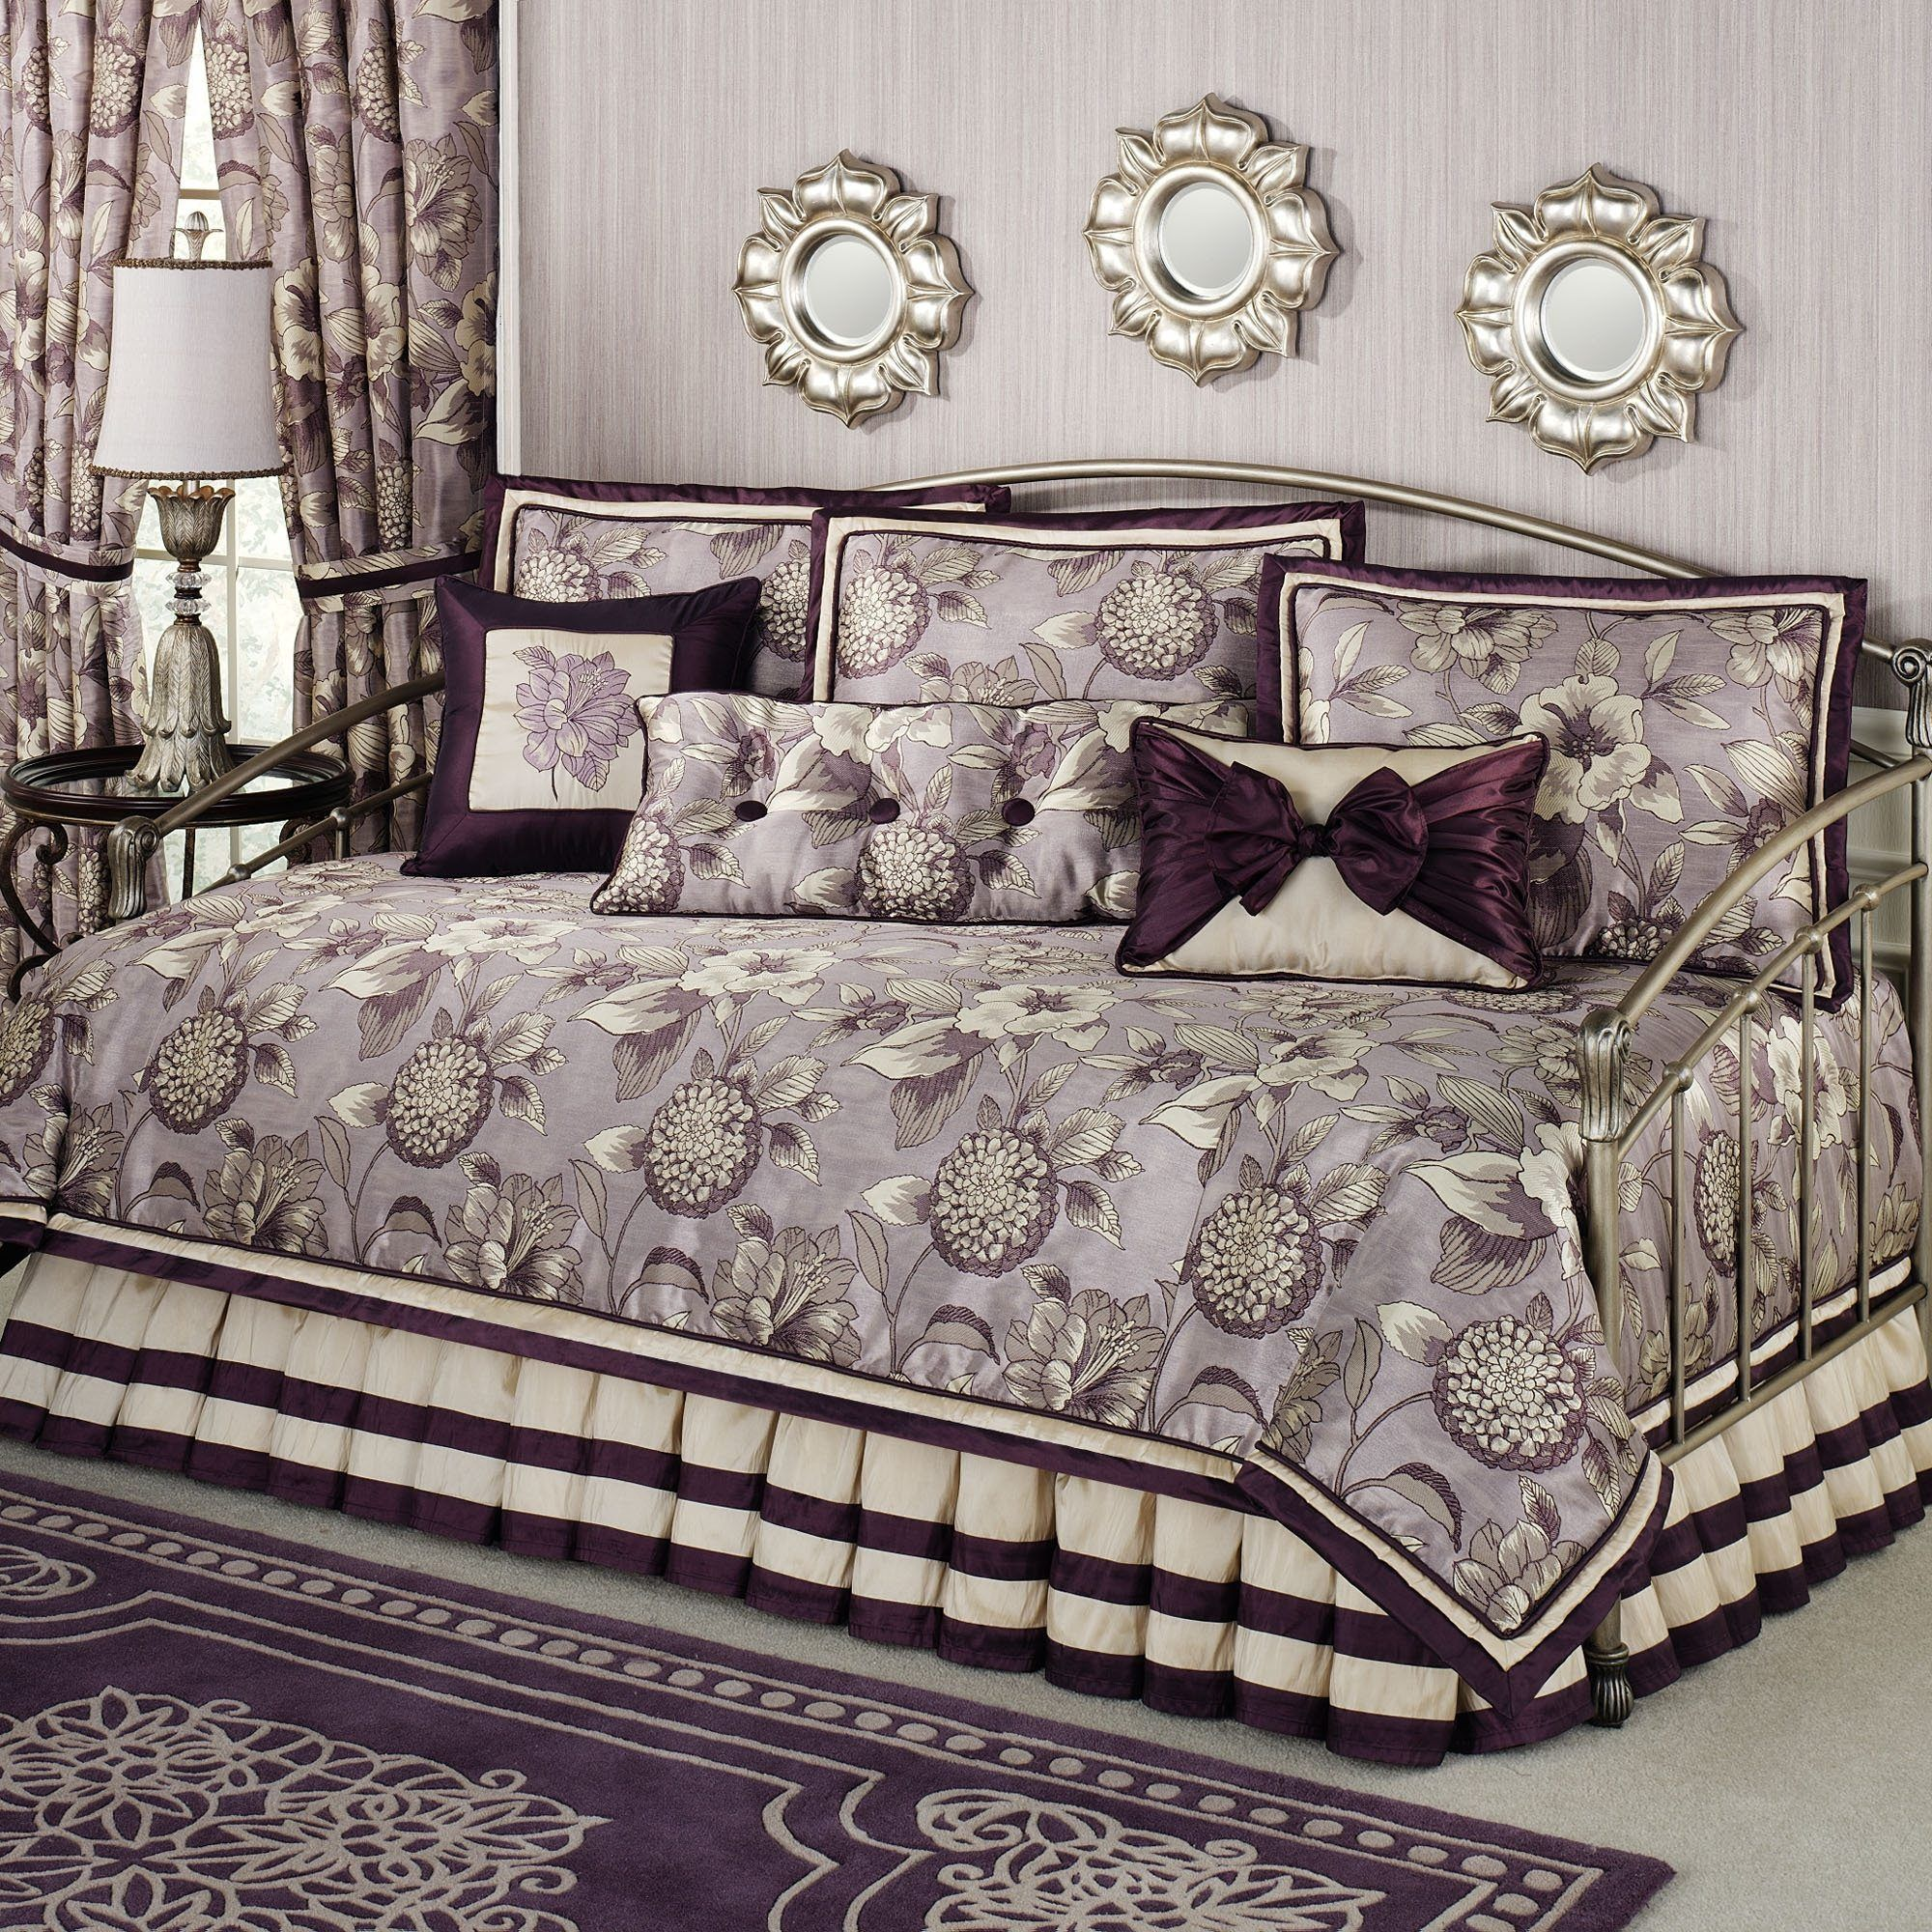 Kids Bedroom Set Clearance: Daybed Bedding Sets Clearance Has One Of The Best Kind Of